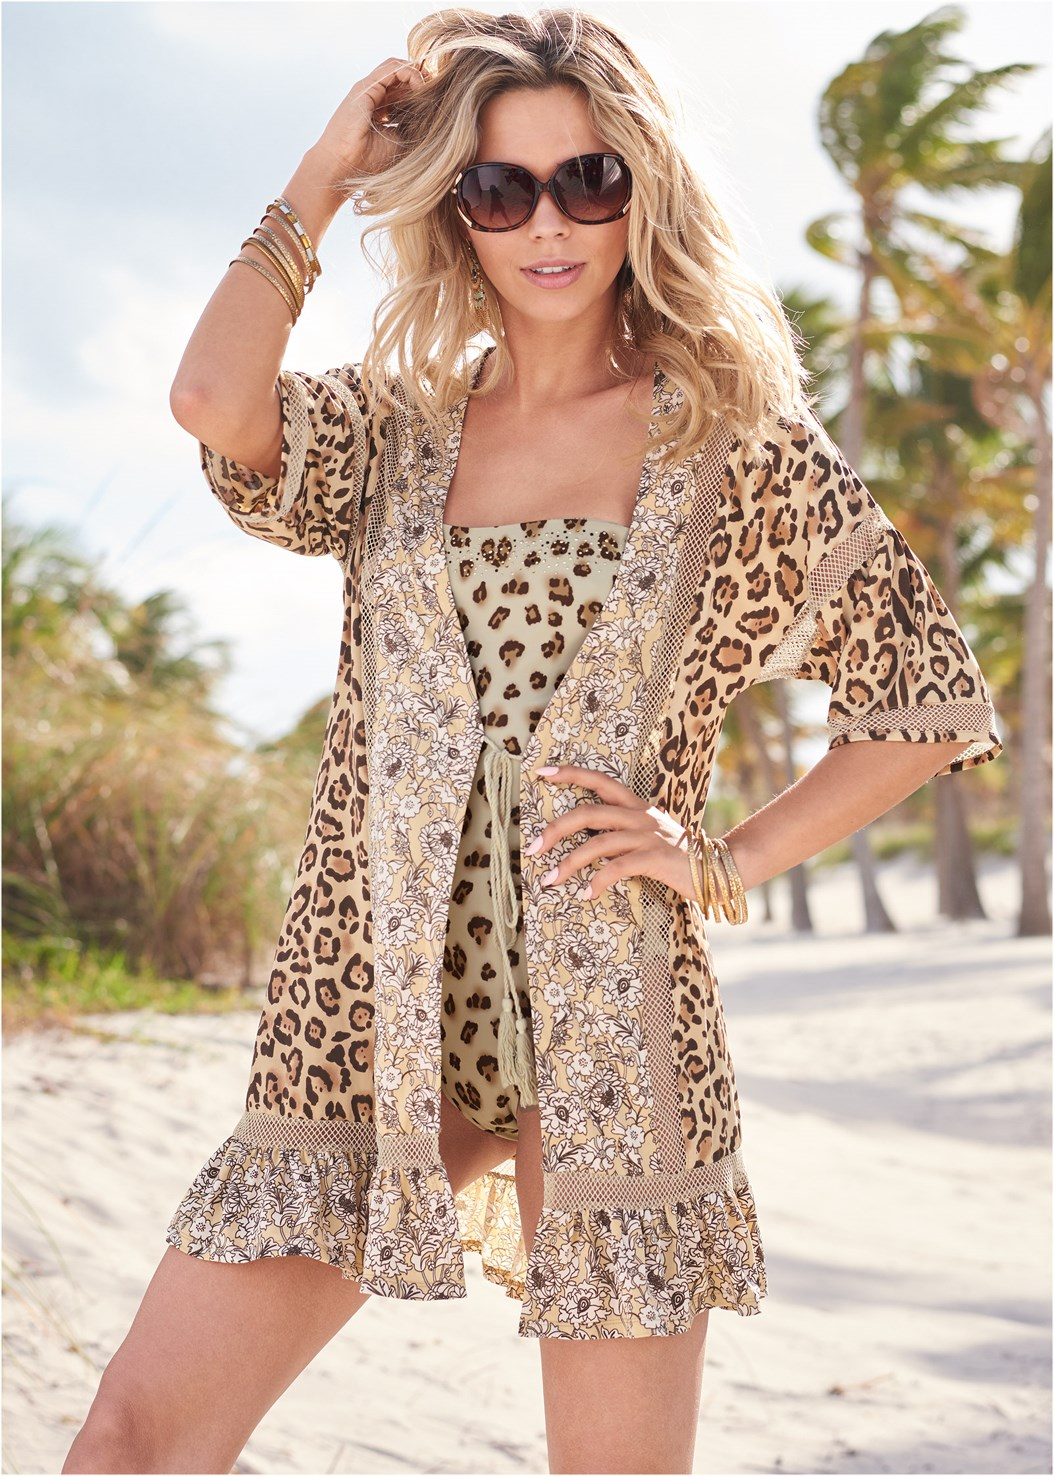 Tassel Tie Kimono Cover-Up,Reversible Monokini,Reversible String Bottom,Sequin And Straw Tote